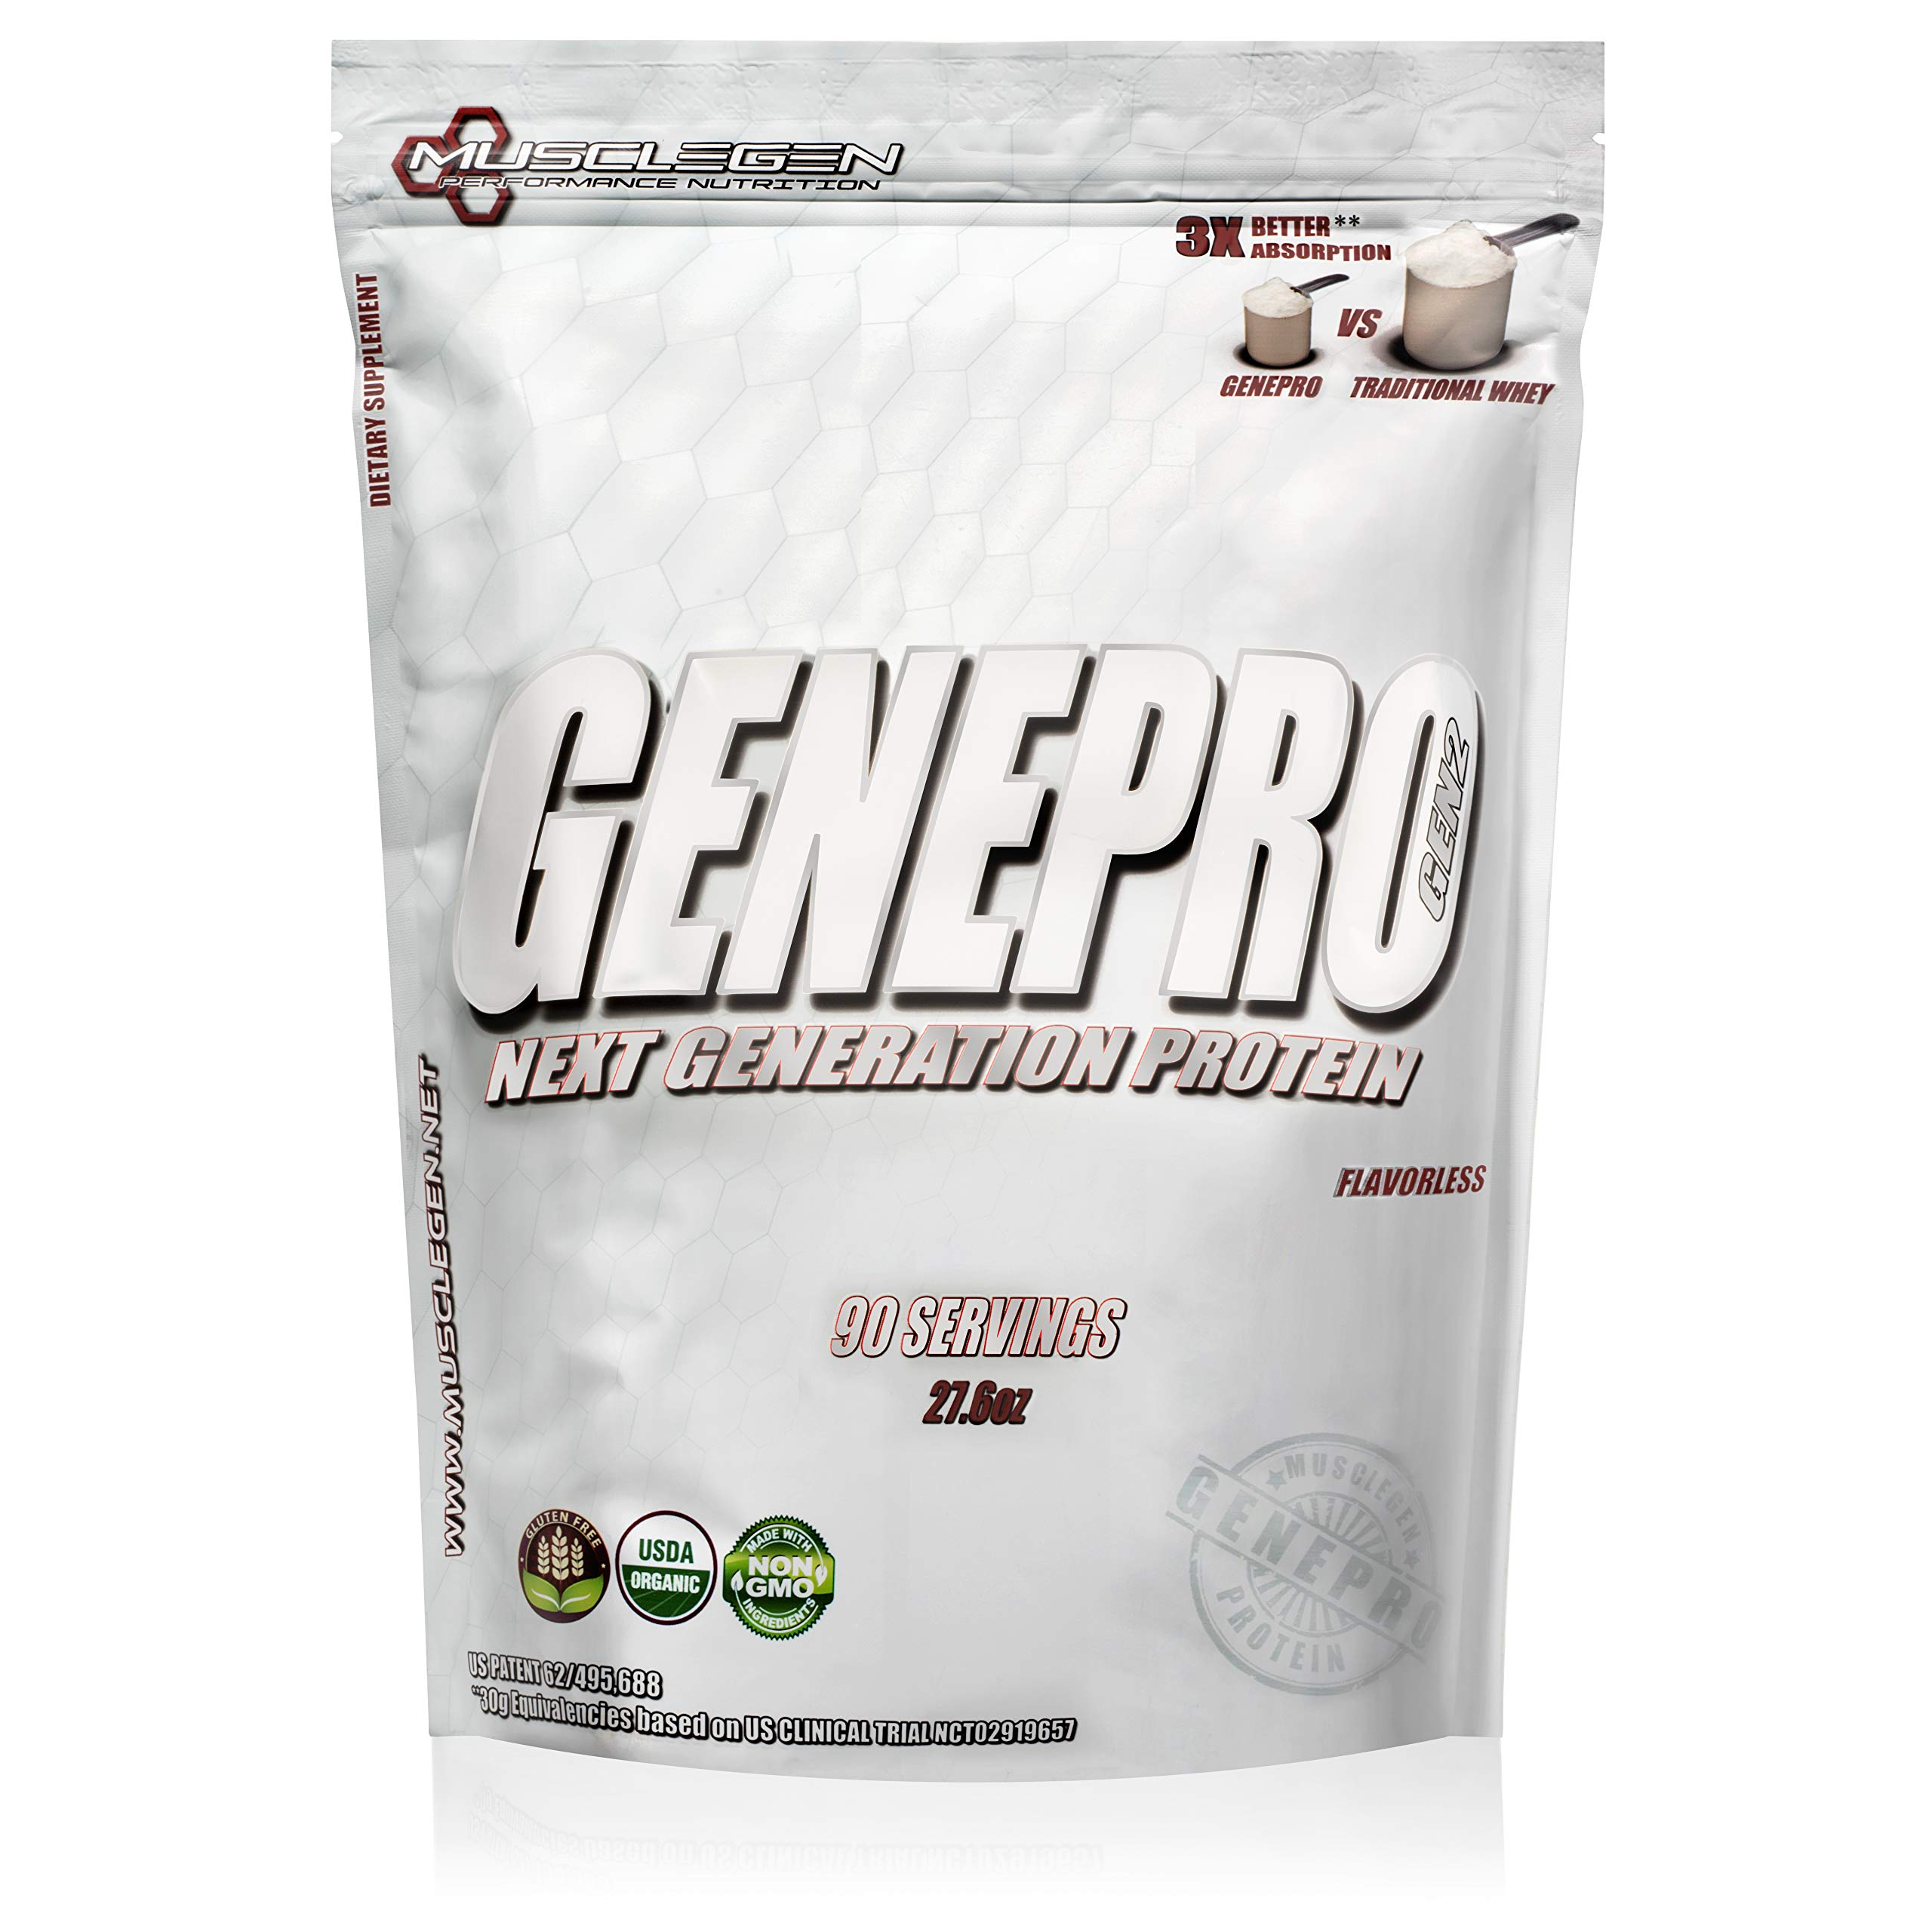 Medical Grade Protein, GENEPRO by Musclegen Research- Premium for Absorption, Muscle Growth & Bariatric. Organic, Non GMO, Gluten Free, No Sugar, Flavorless & Mixes with Any Drink. Bag Varies